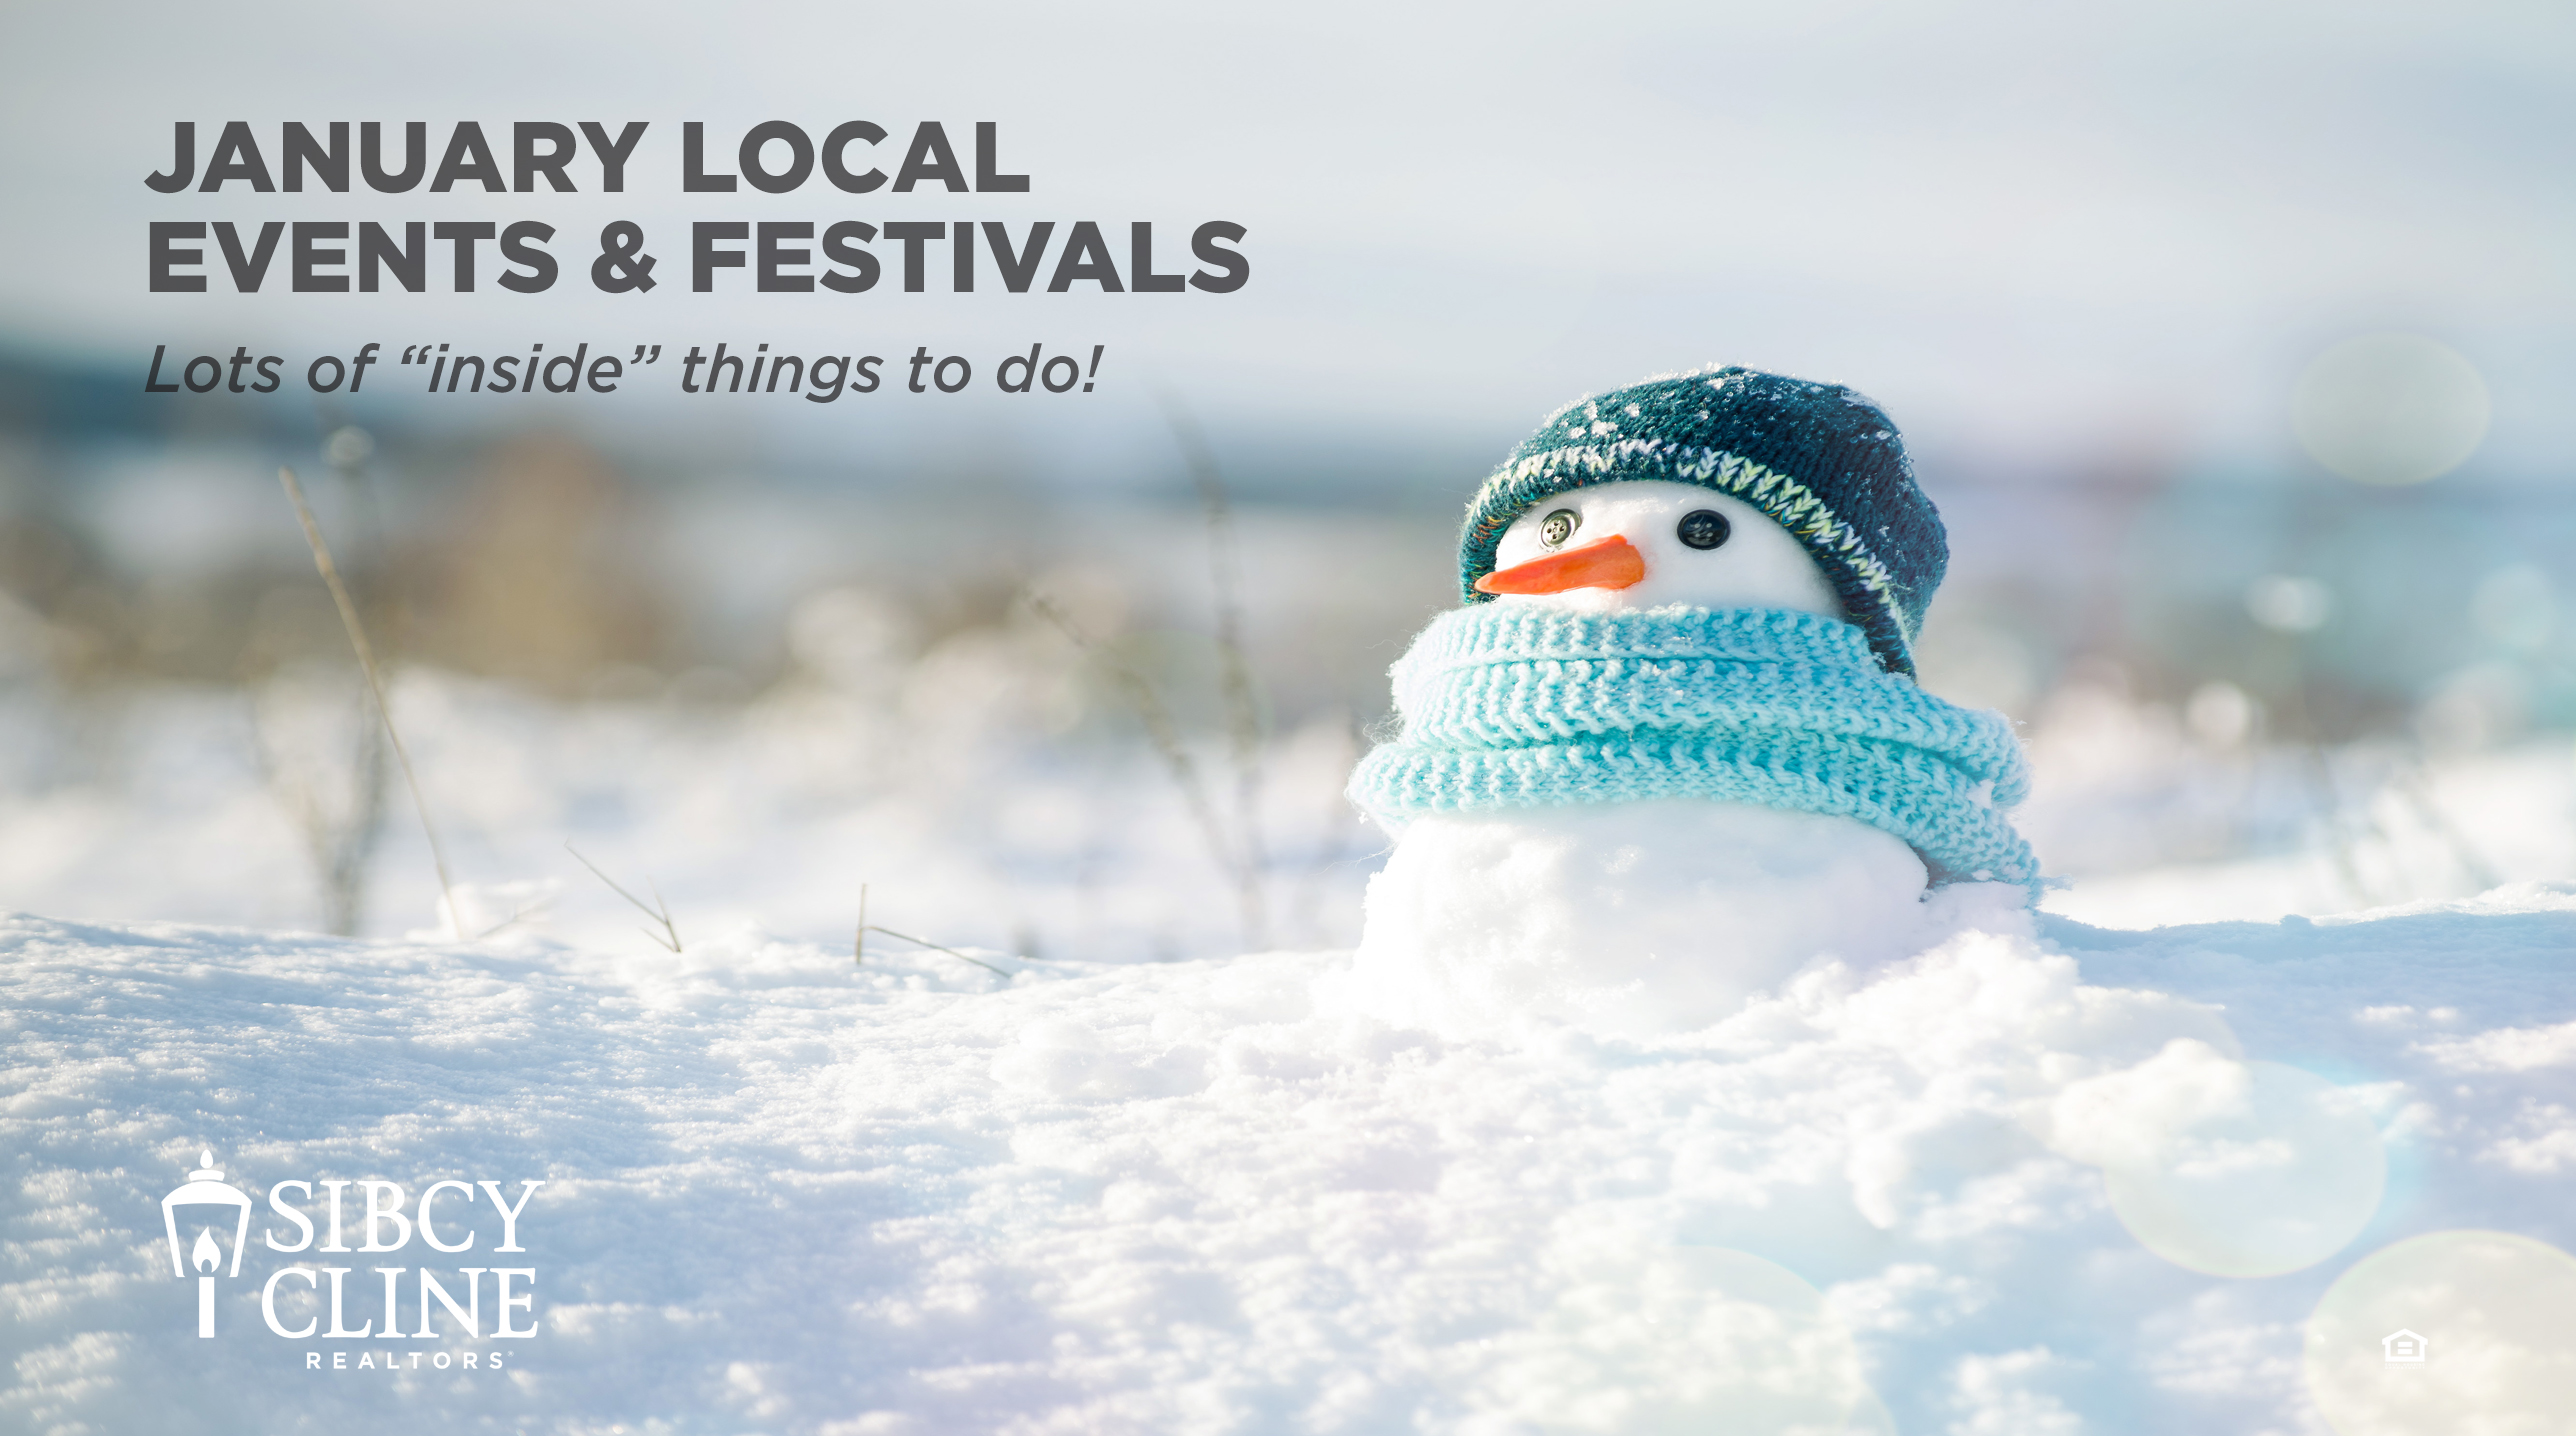 January events and festivals